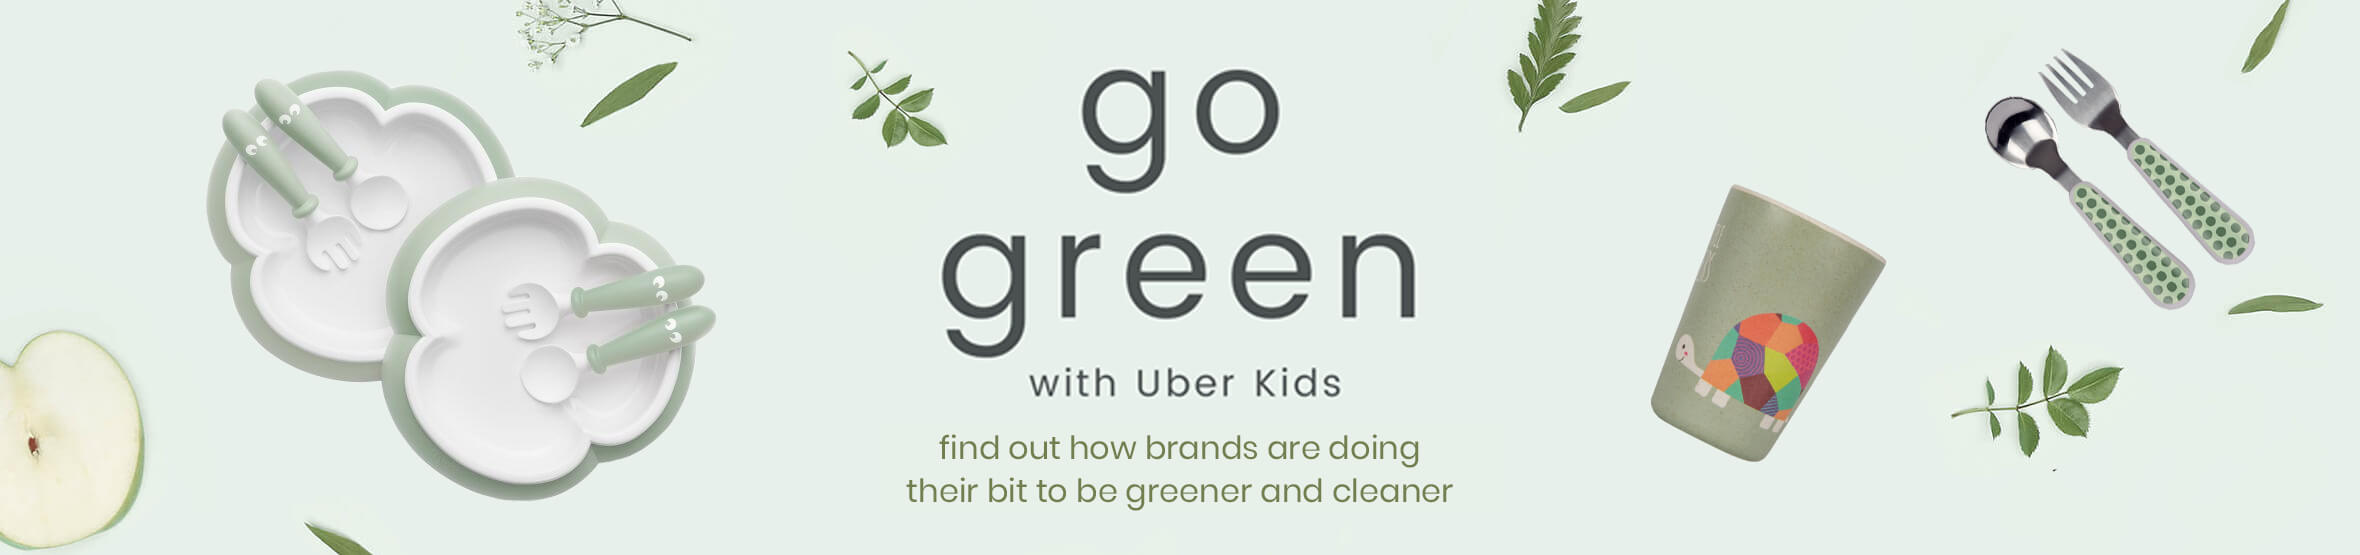 Go Green with Uber Kids